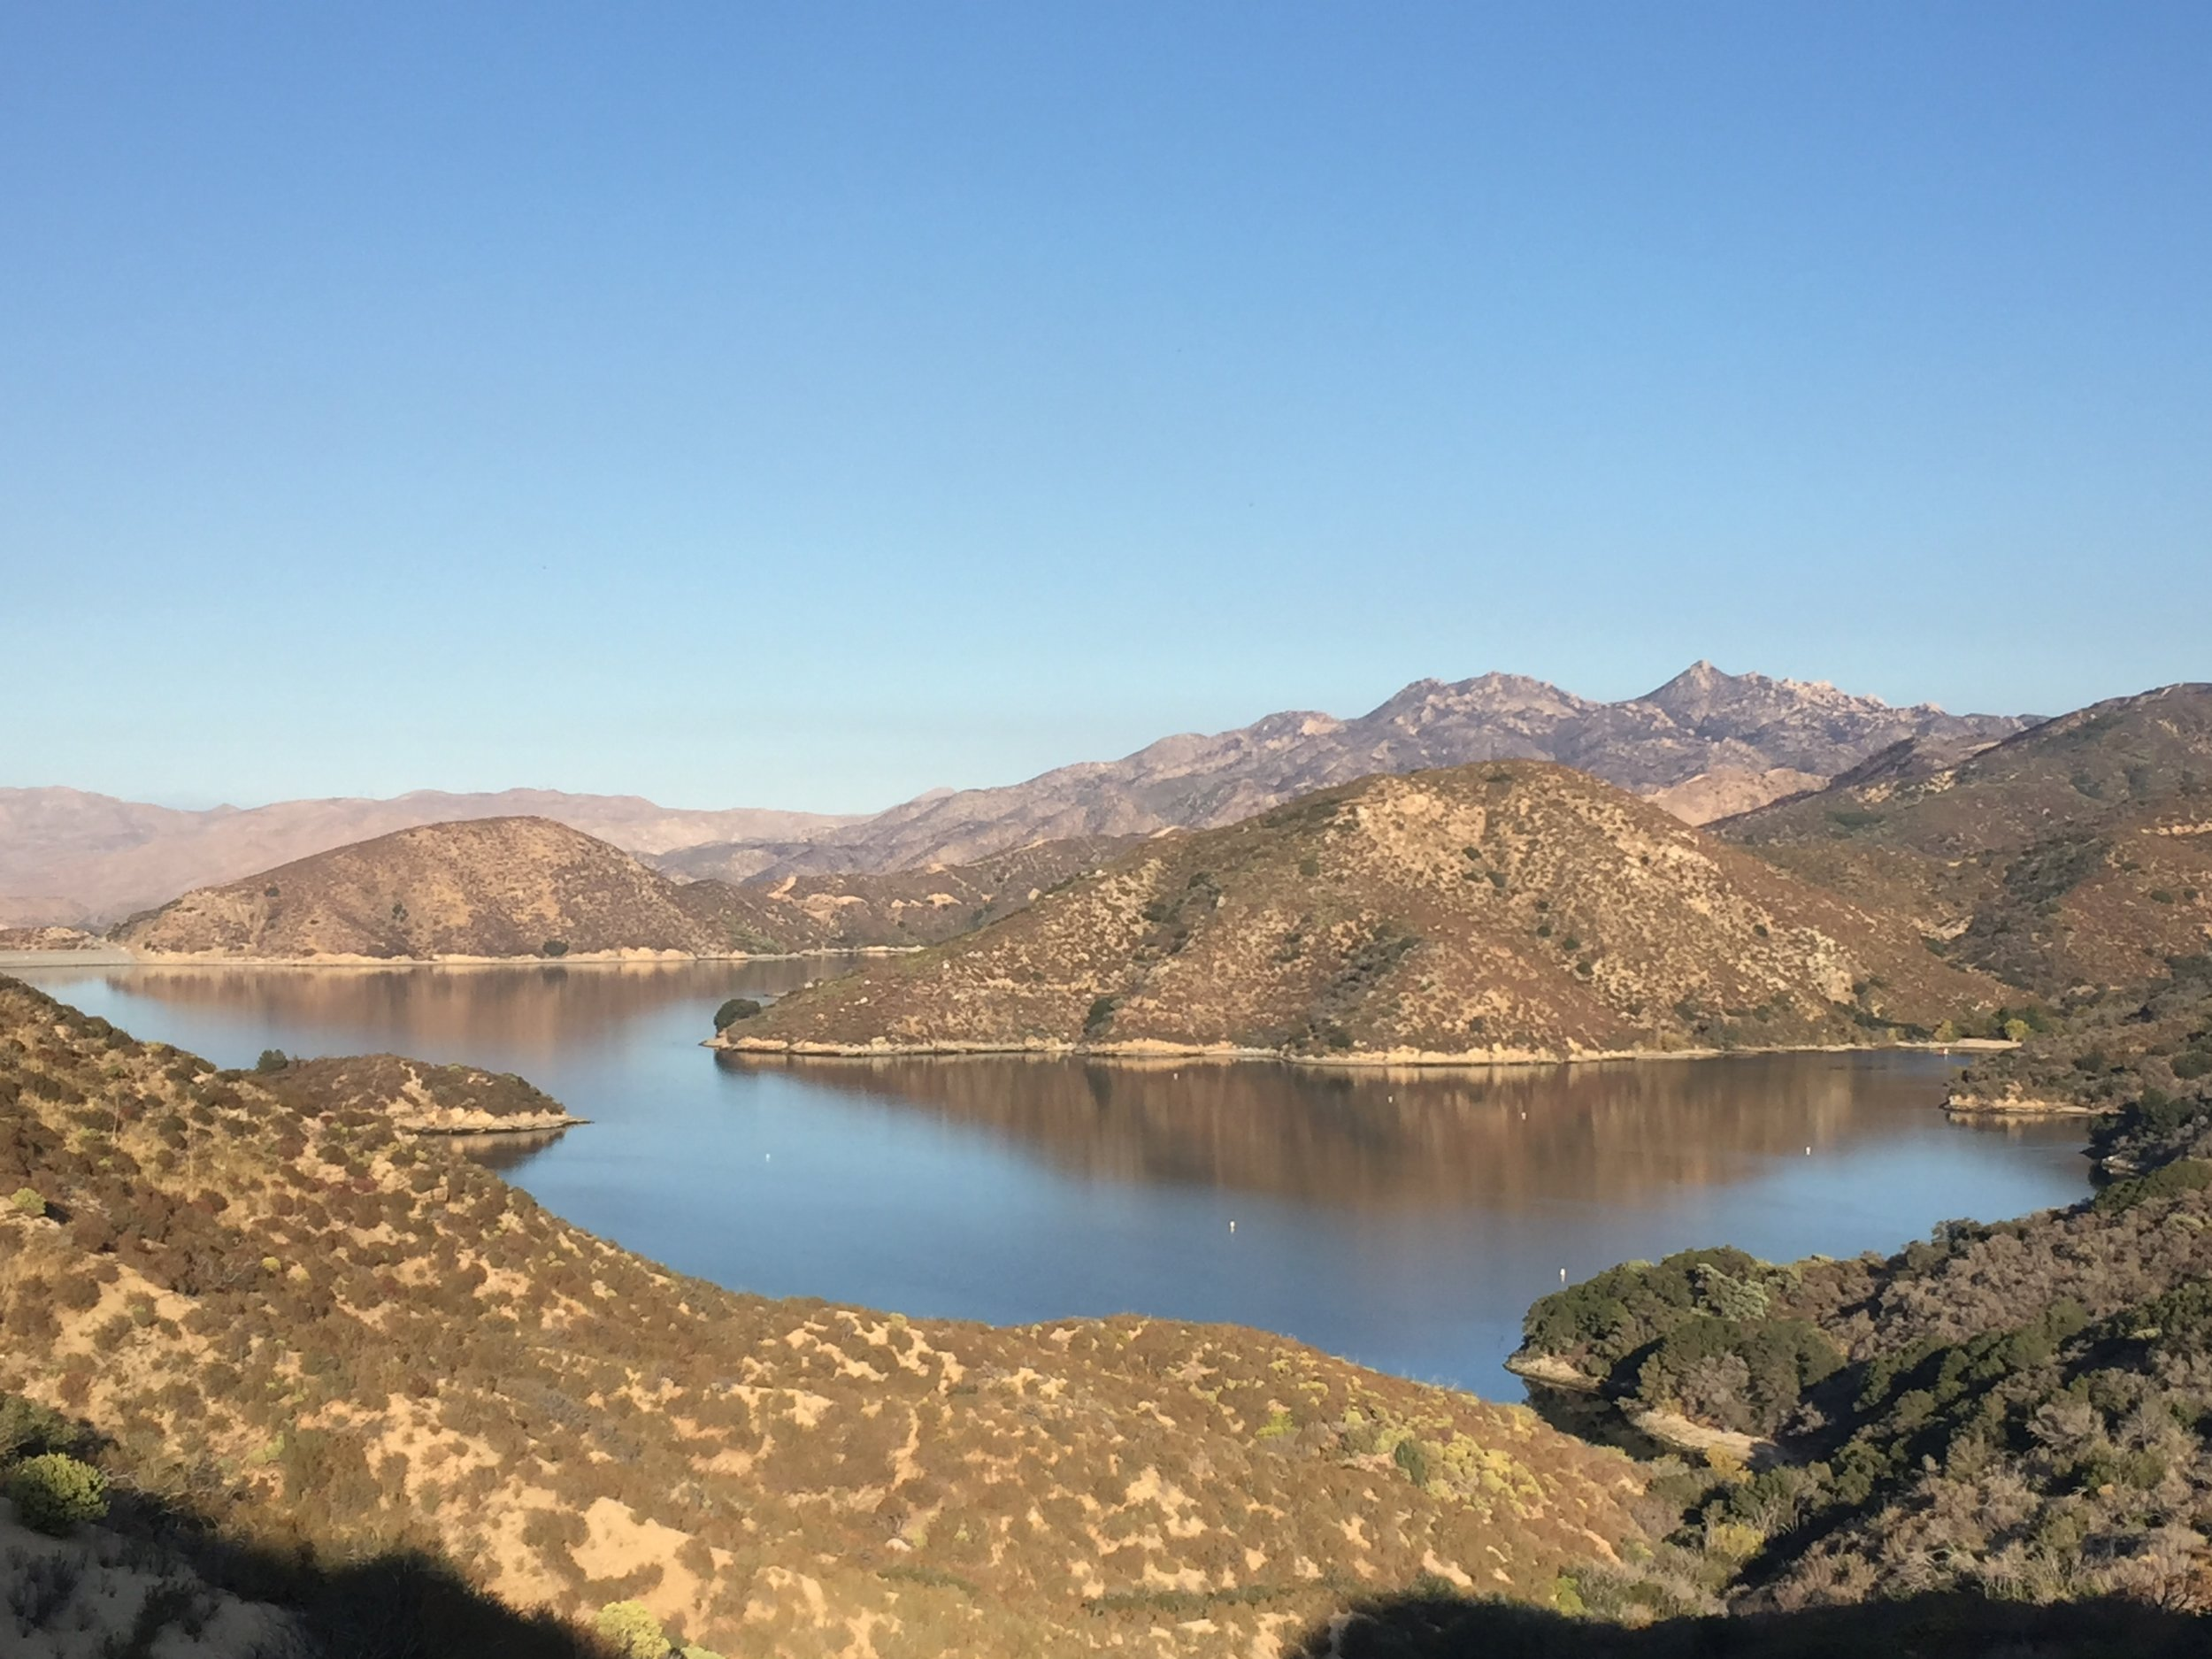 Silverwood Lake, surrounded by intact vegetation but unfortunately also plenty of litter